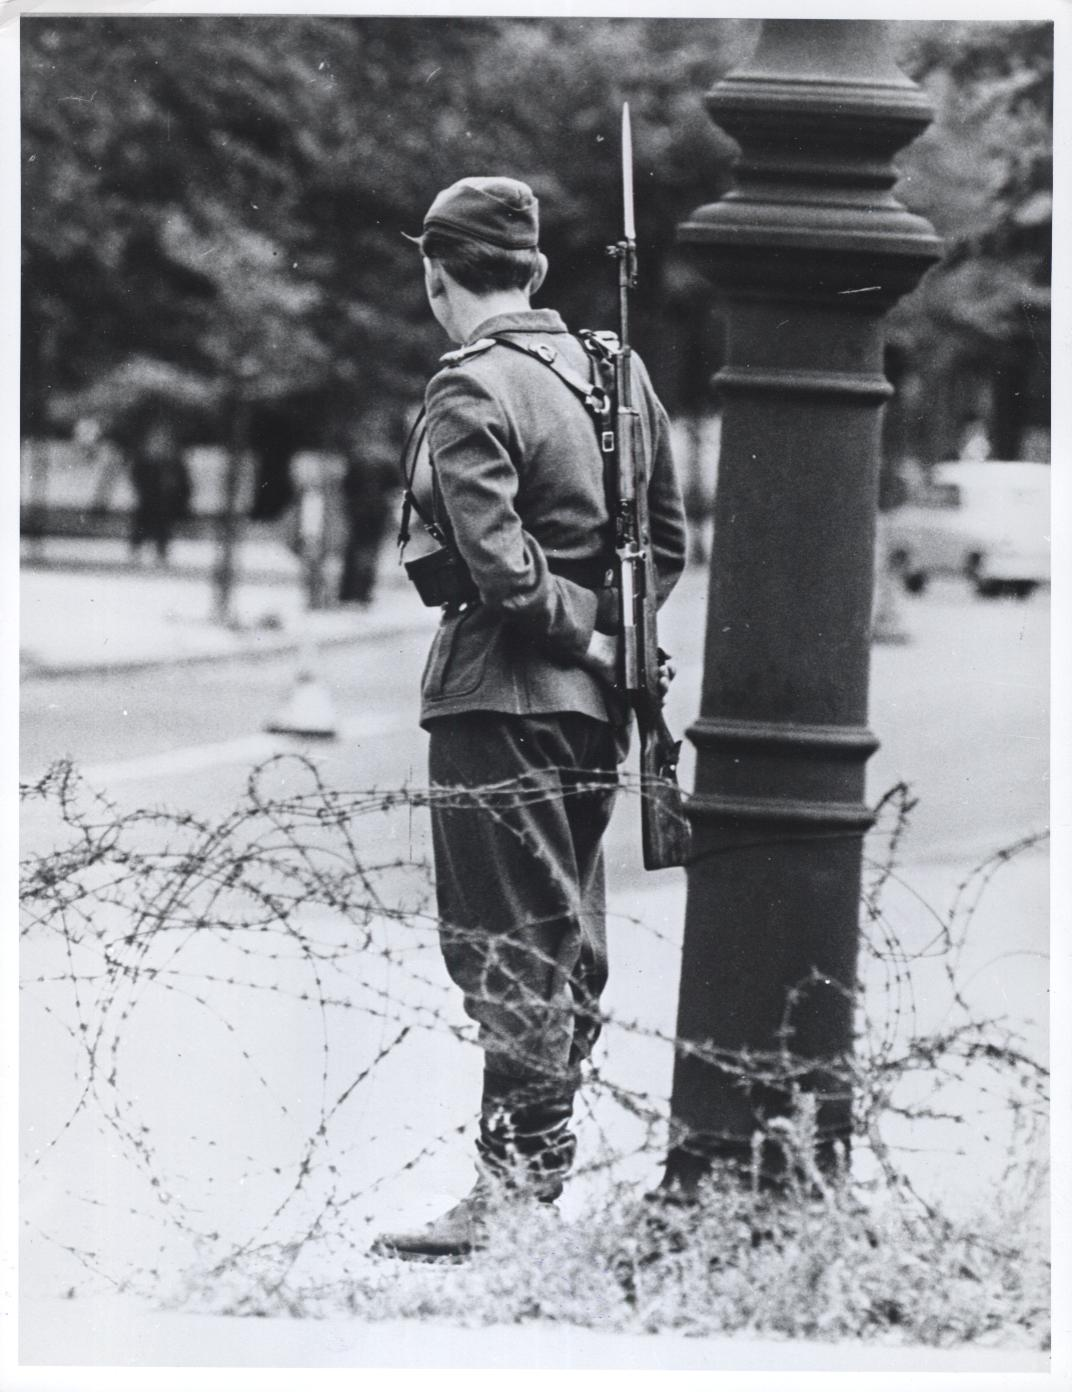 An East German soldier guarding the newly-formed Berlin Wall in August 1961.